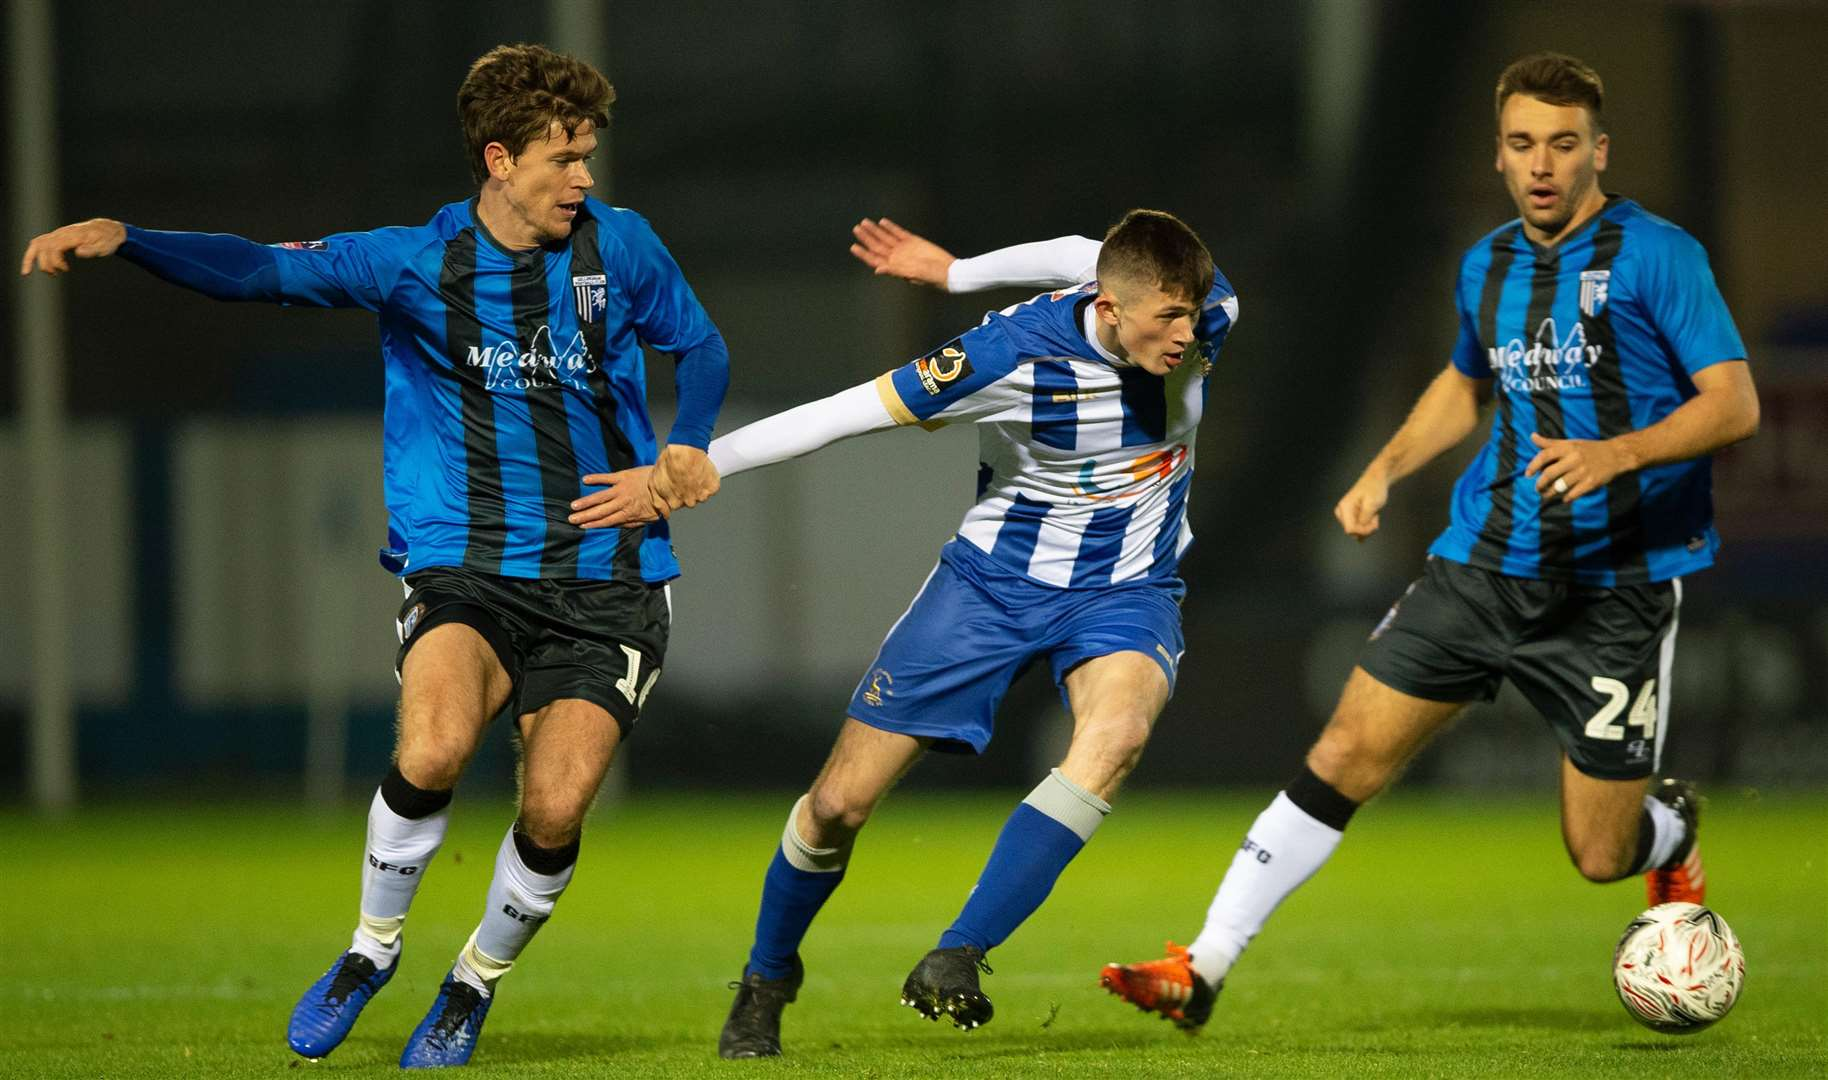 Gillingham's Billy Bingham gets to grips with Tyrone O'Neill. Picture: Ady Kerry